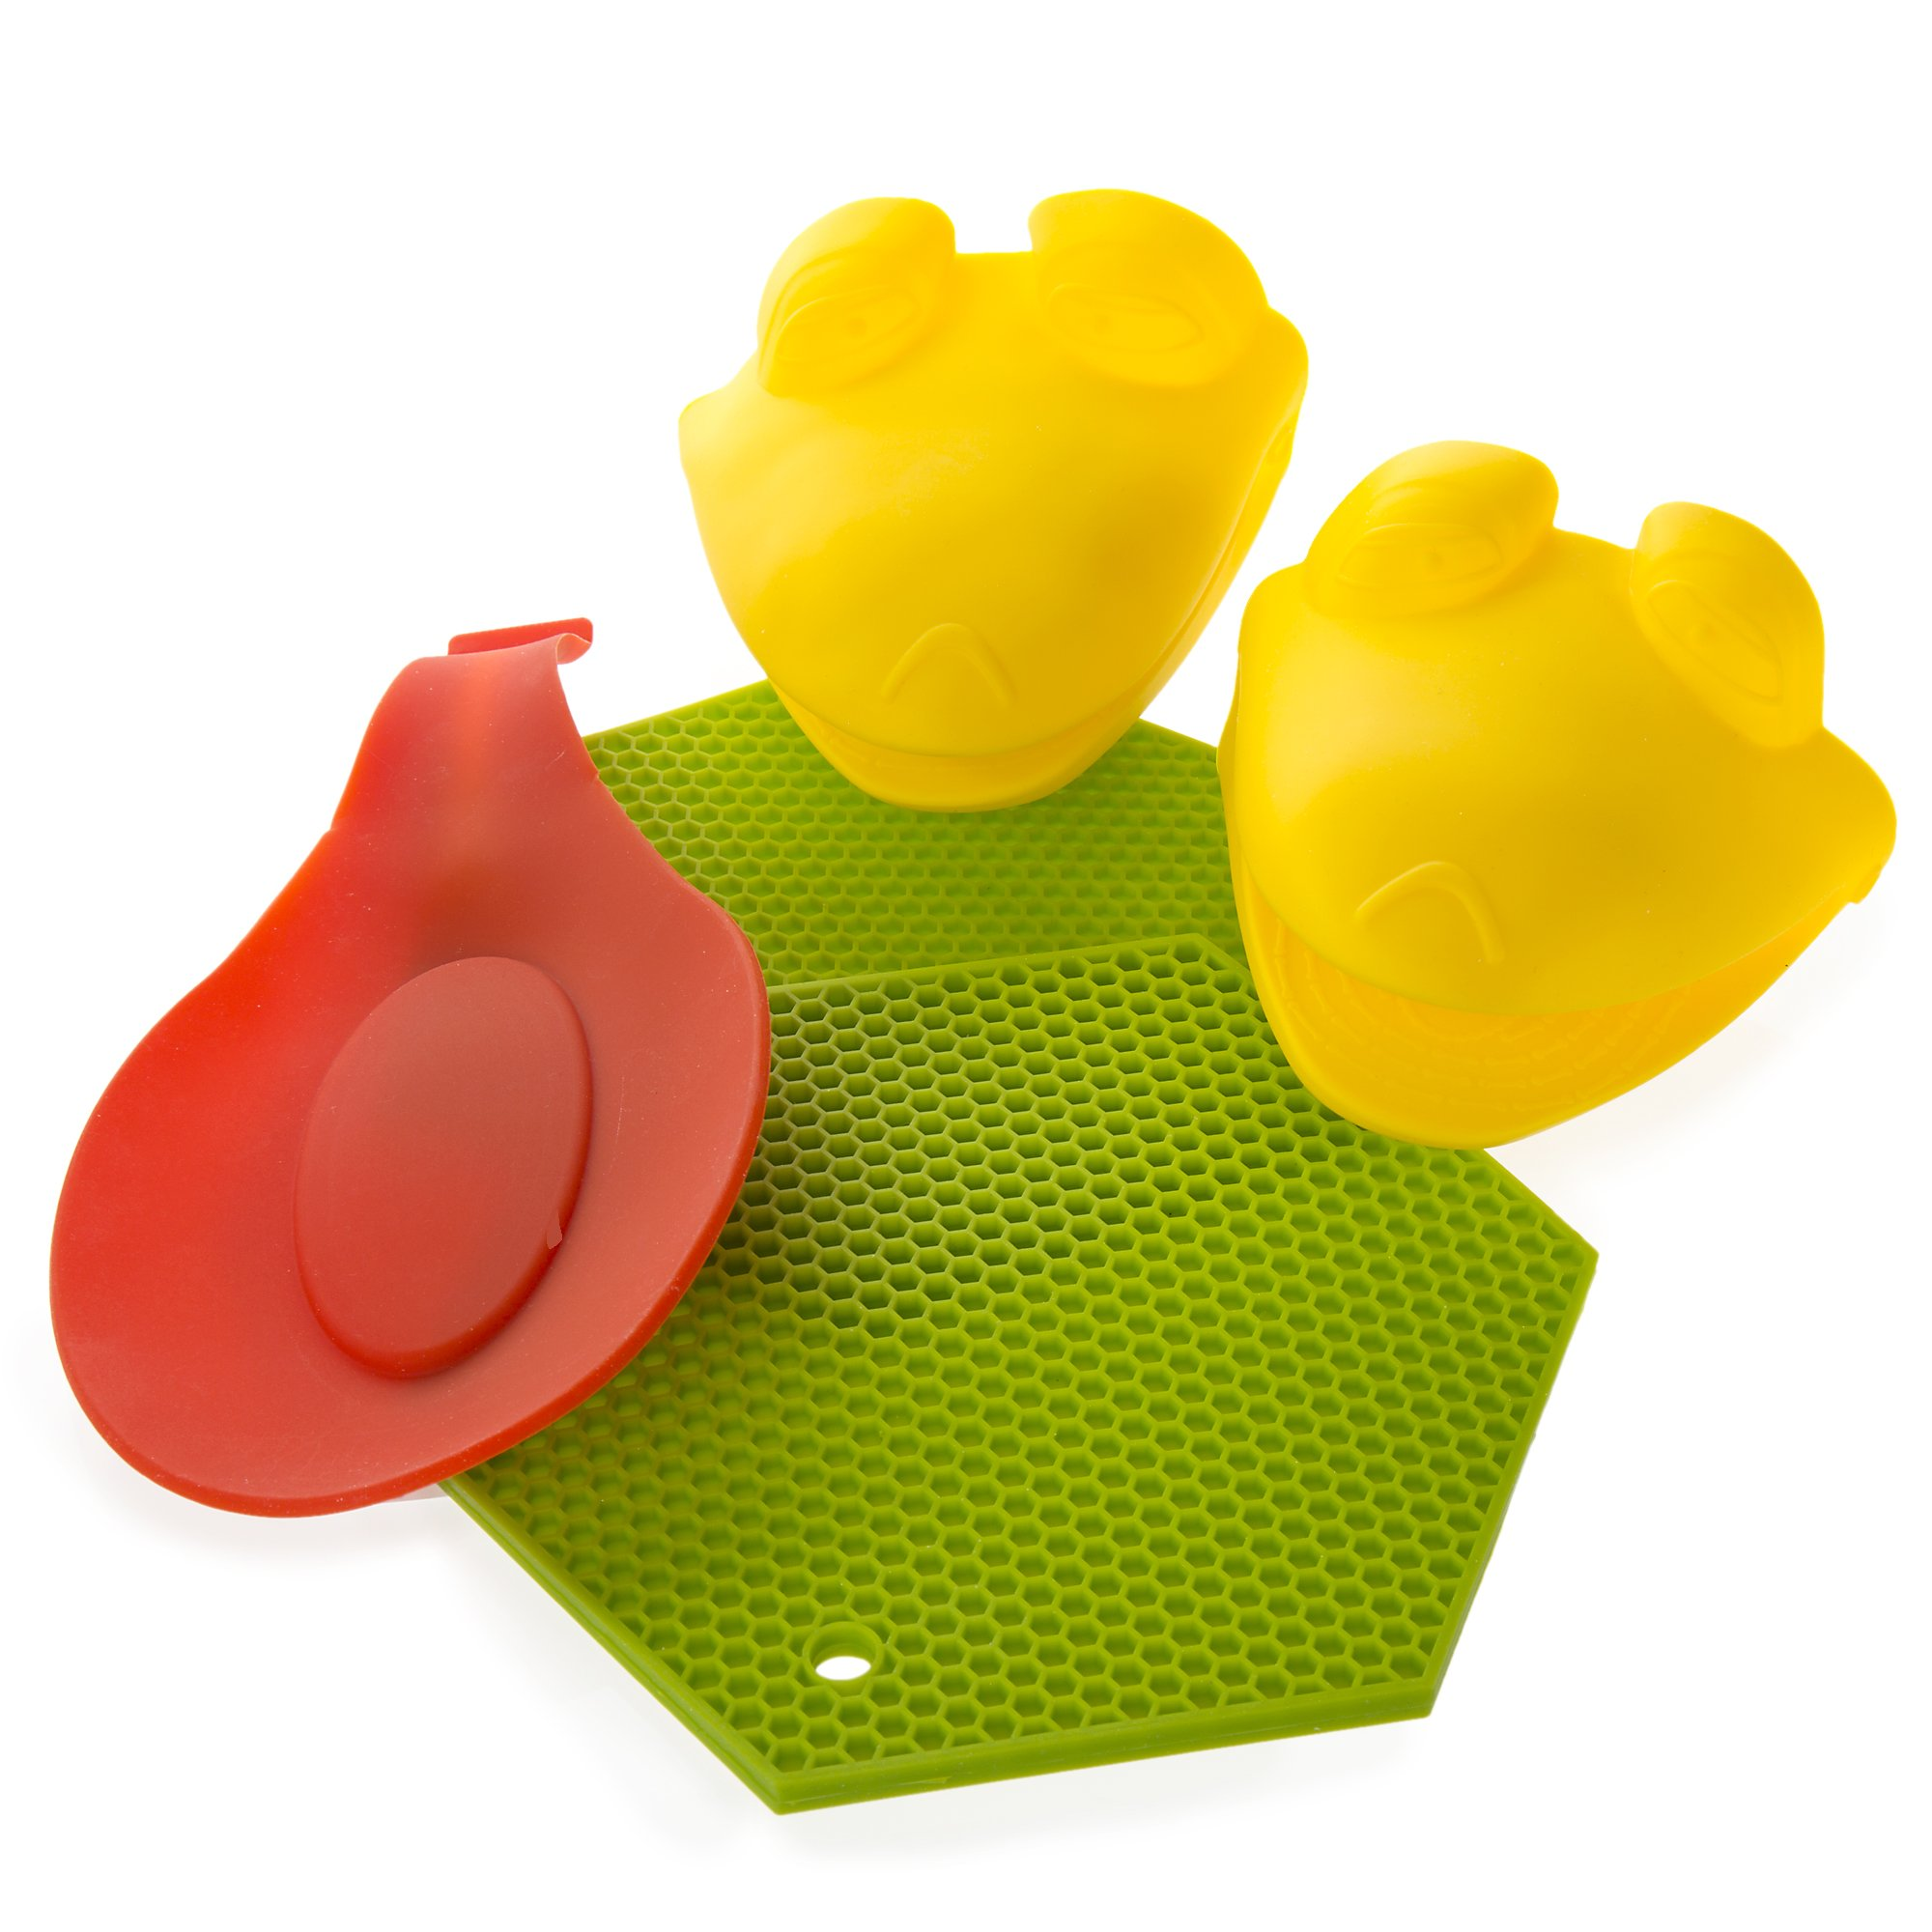 TJQ Depot LLC Silicone Pot Holders With Silicone Oven Mitts and Silicone Spoon Rest - Make your cooking time in the kitchen safe with these great products